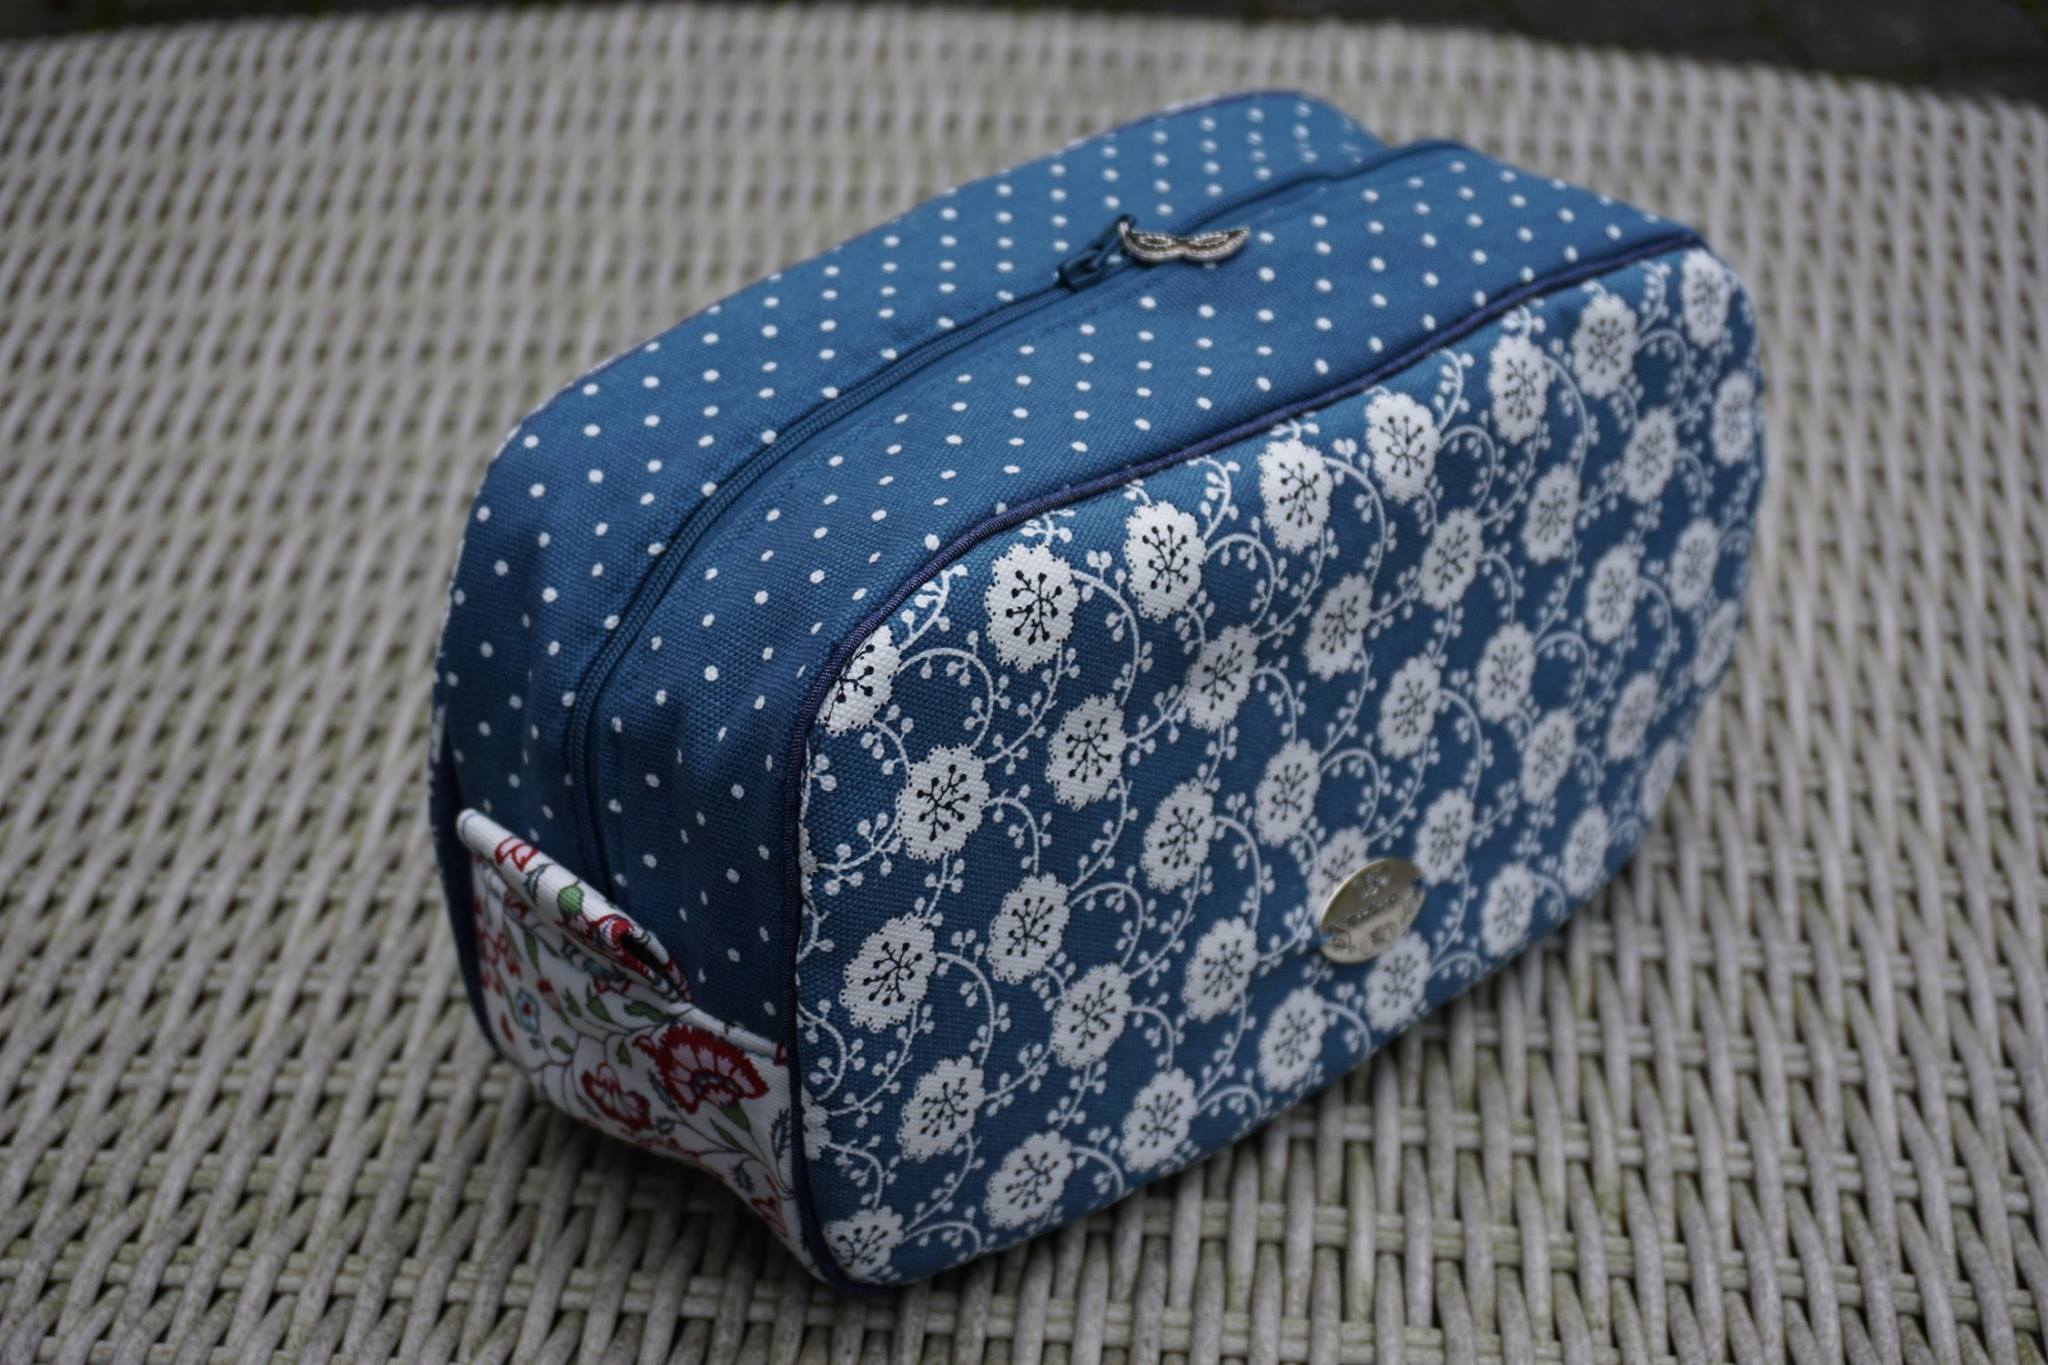 Blue Floral Pebble Wash Bag by Ilse Lemmens